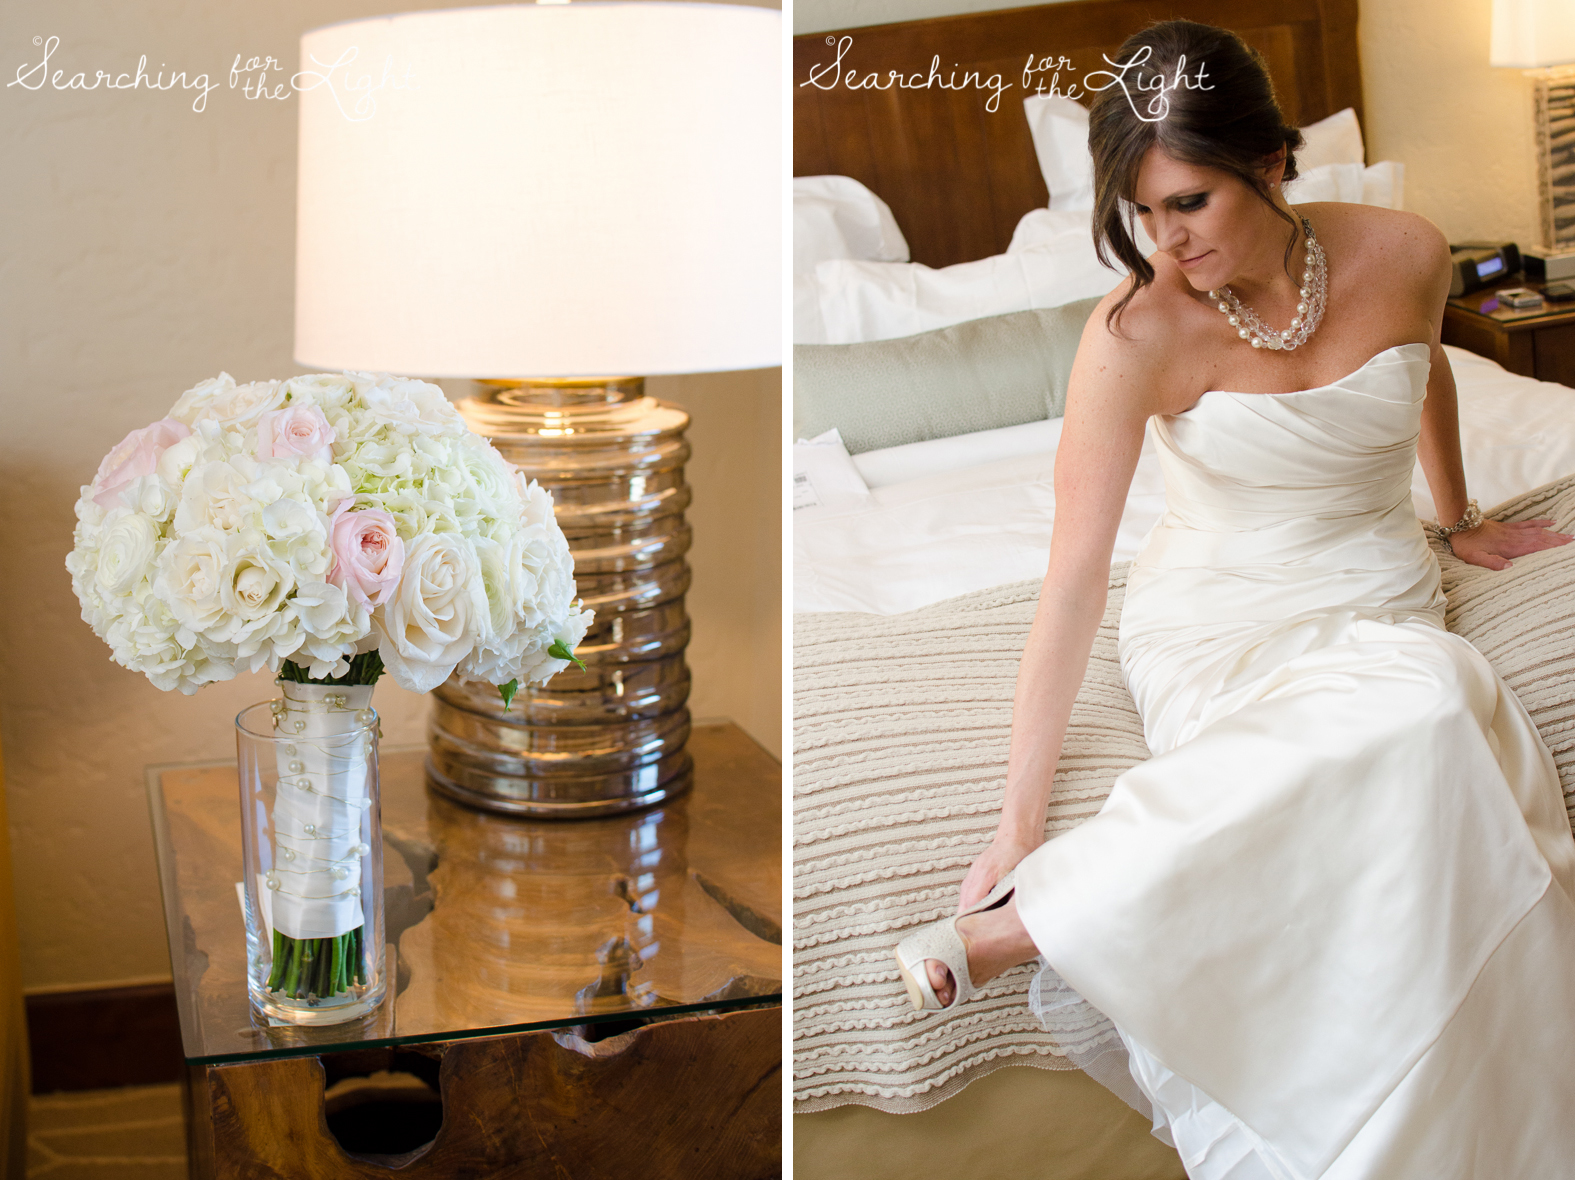 bride getting ready Fall Wedding photos in Beaver Creek, CO by Denver Wedding Photographer